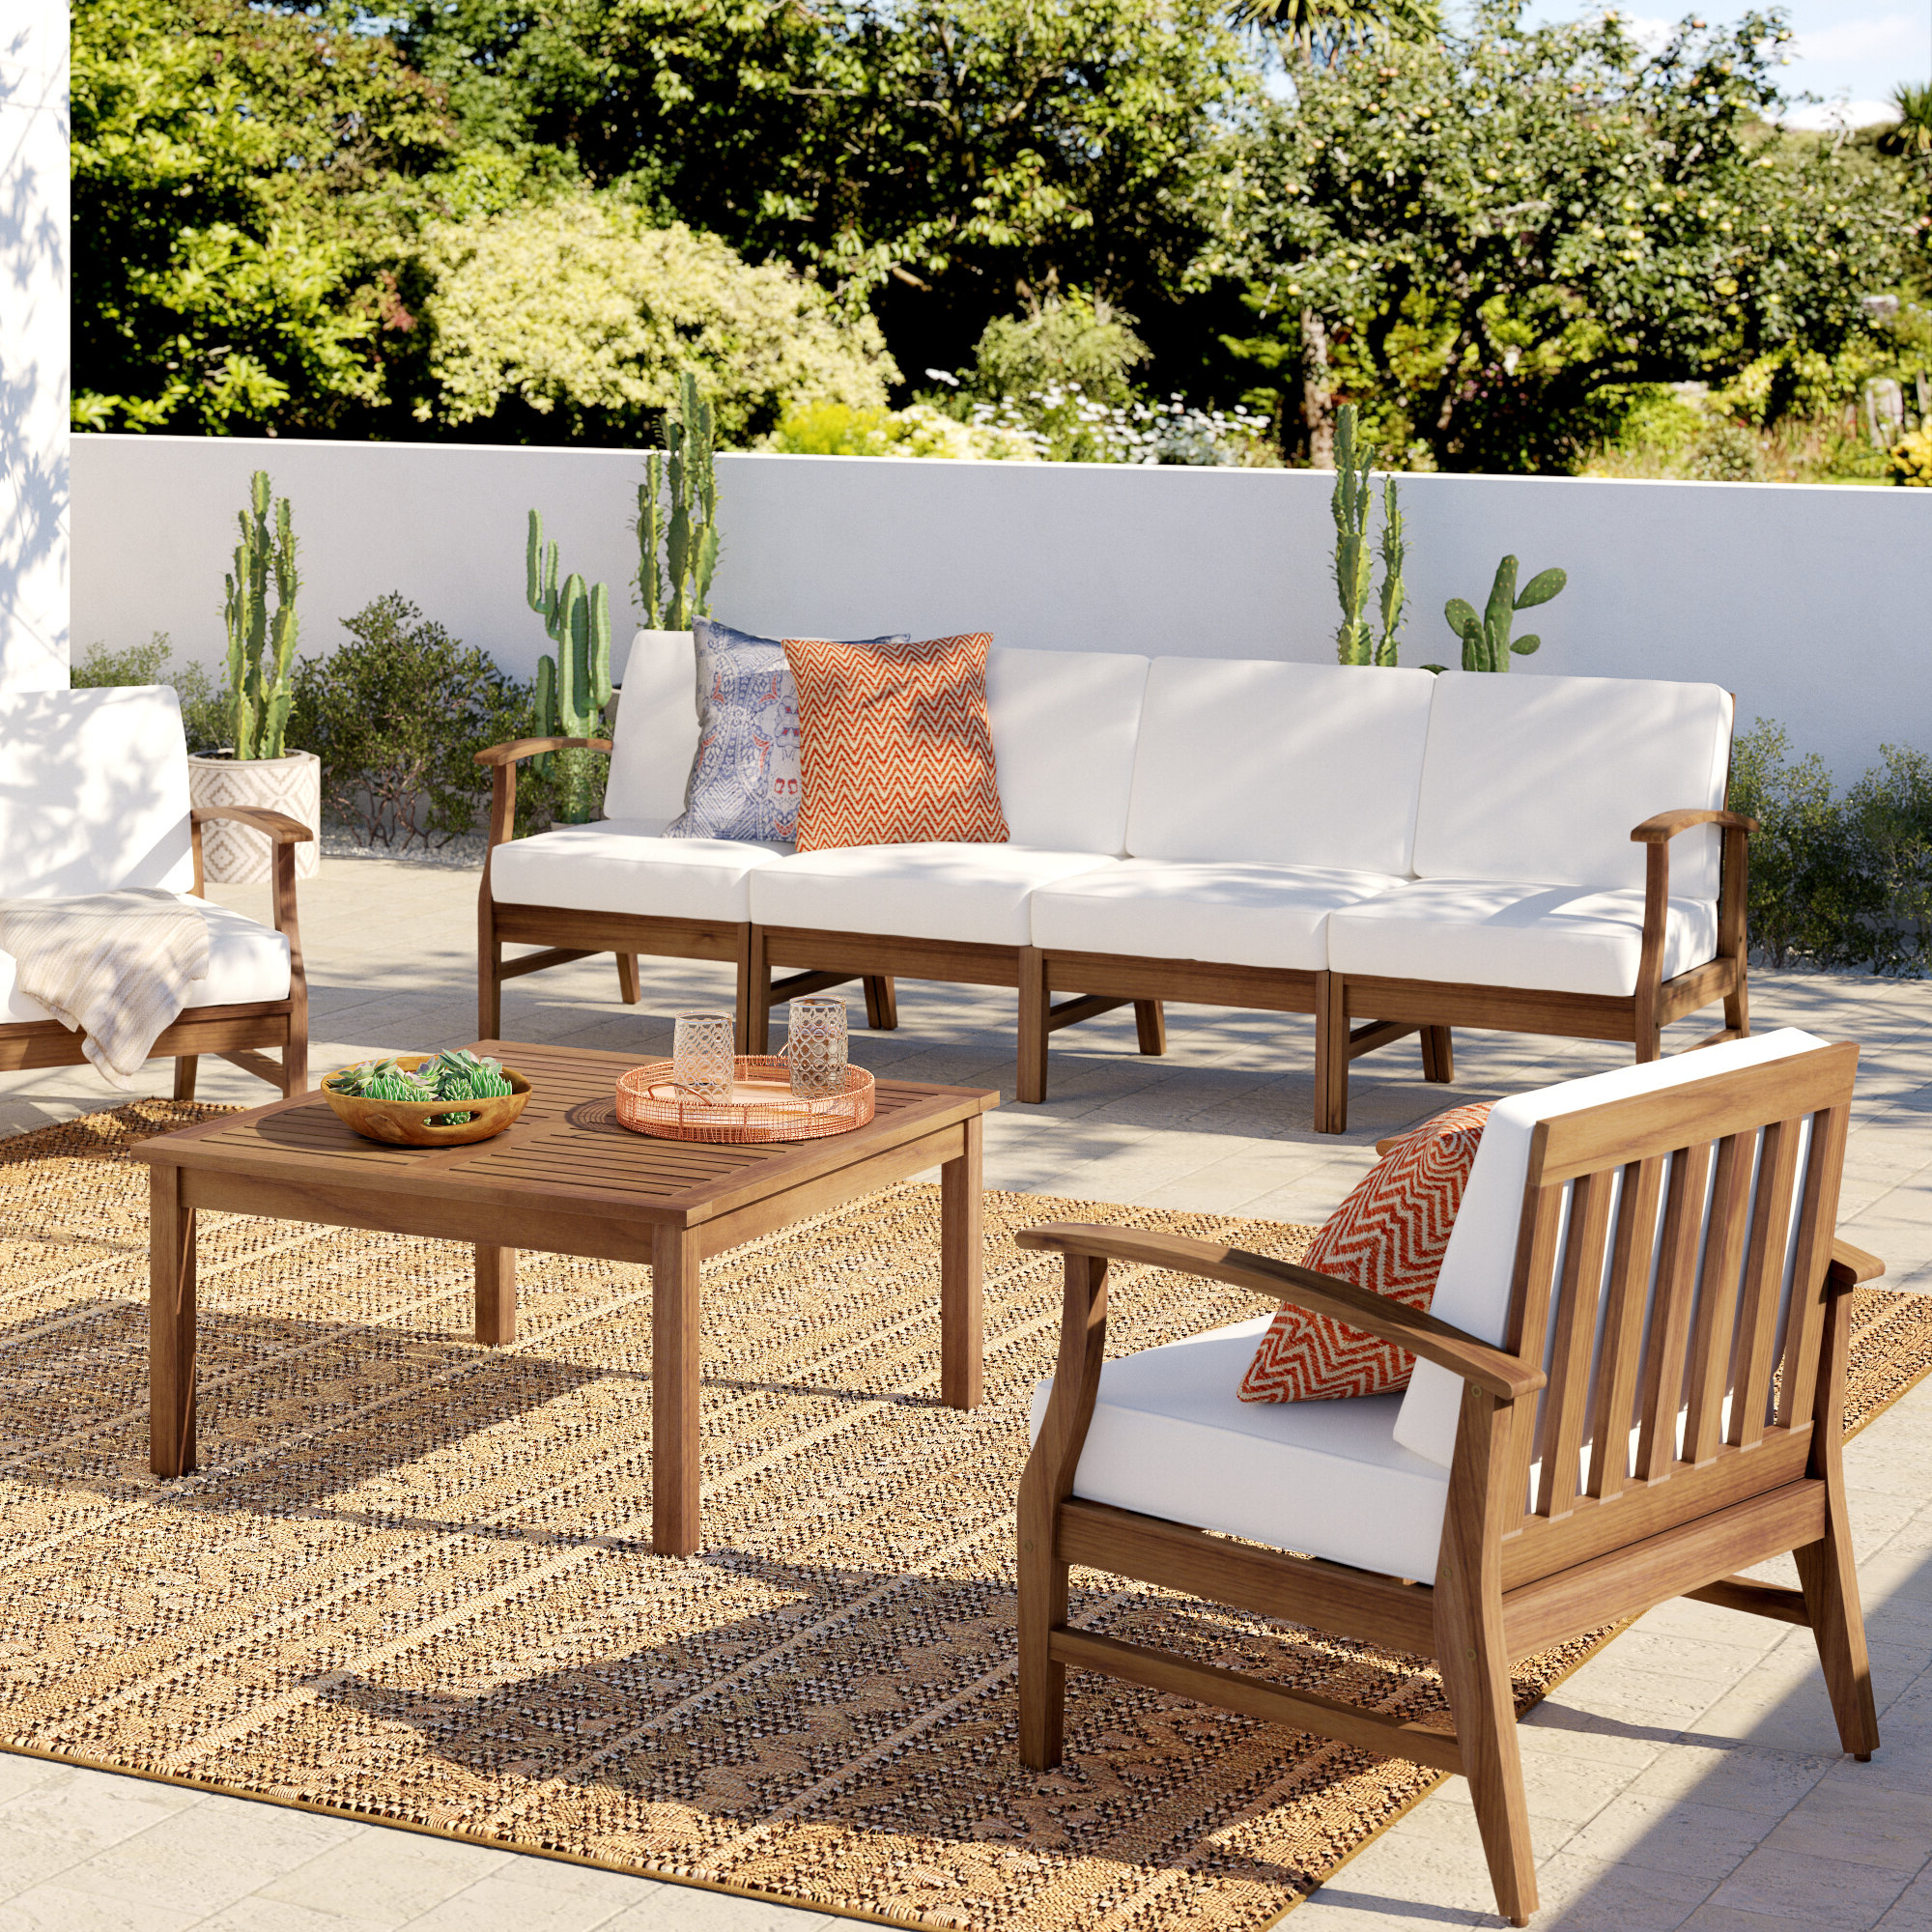 Most Recent Antonia Teak Patio Sectionals With Cushions For Antonia 4 Piece Sofa Set With Cushions (View 18 of 25)